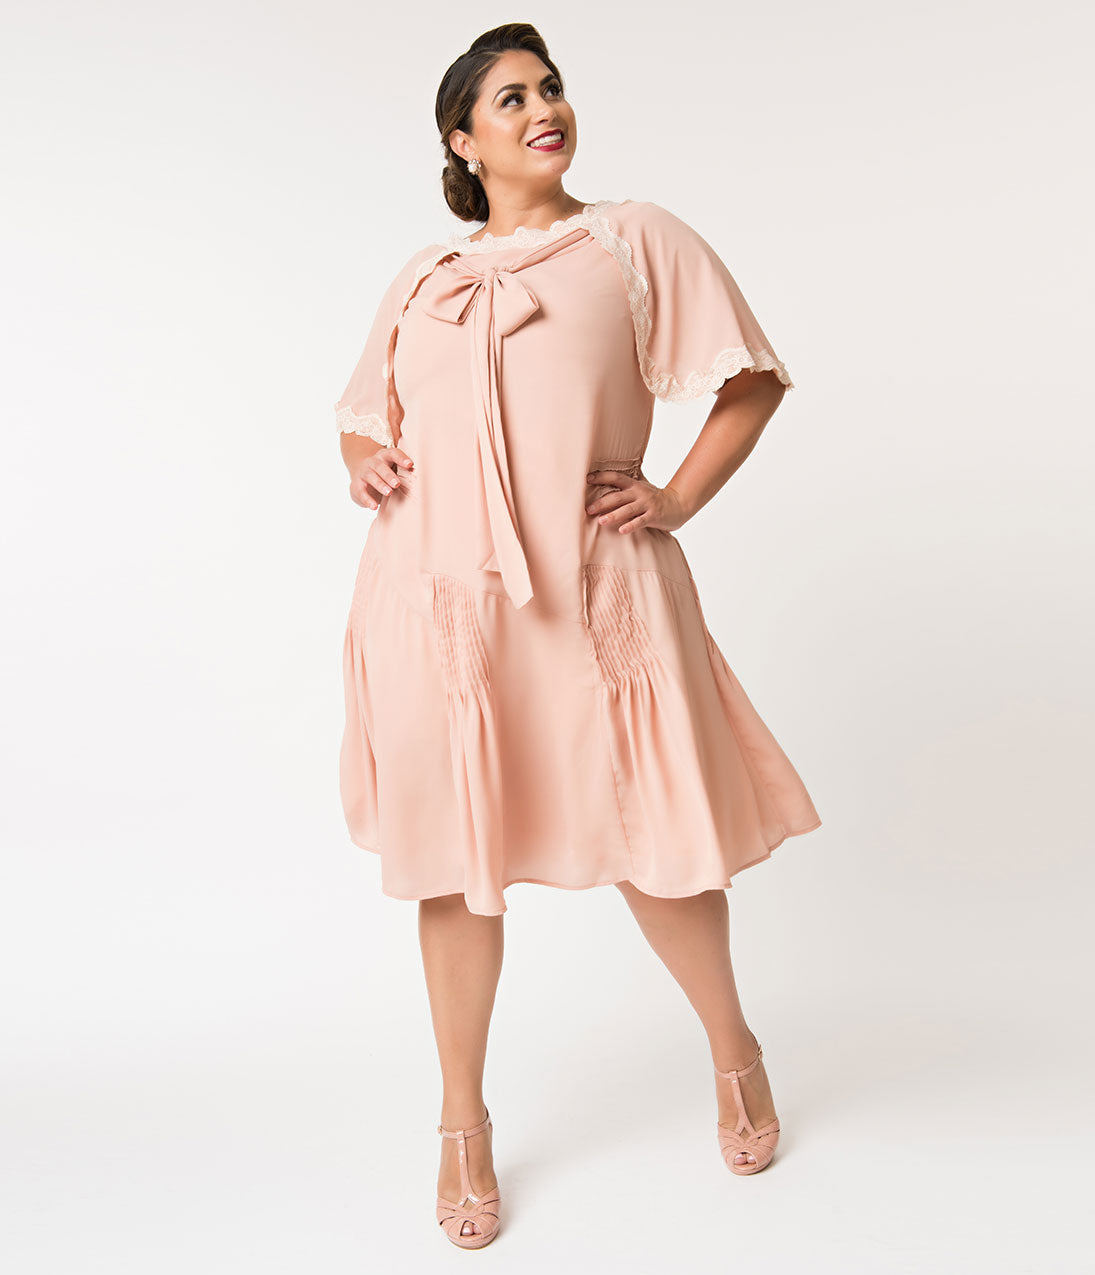 1930s Art Deco Plus Size Dresses | Tea Dresses, Party Dresses Unique Vintage Plus Size 1930S Style Antique Rose Dewitt Day Flapper Dress $110.00 AT vintagedancer.com